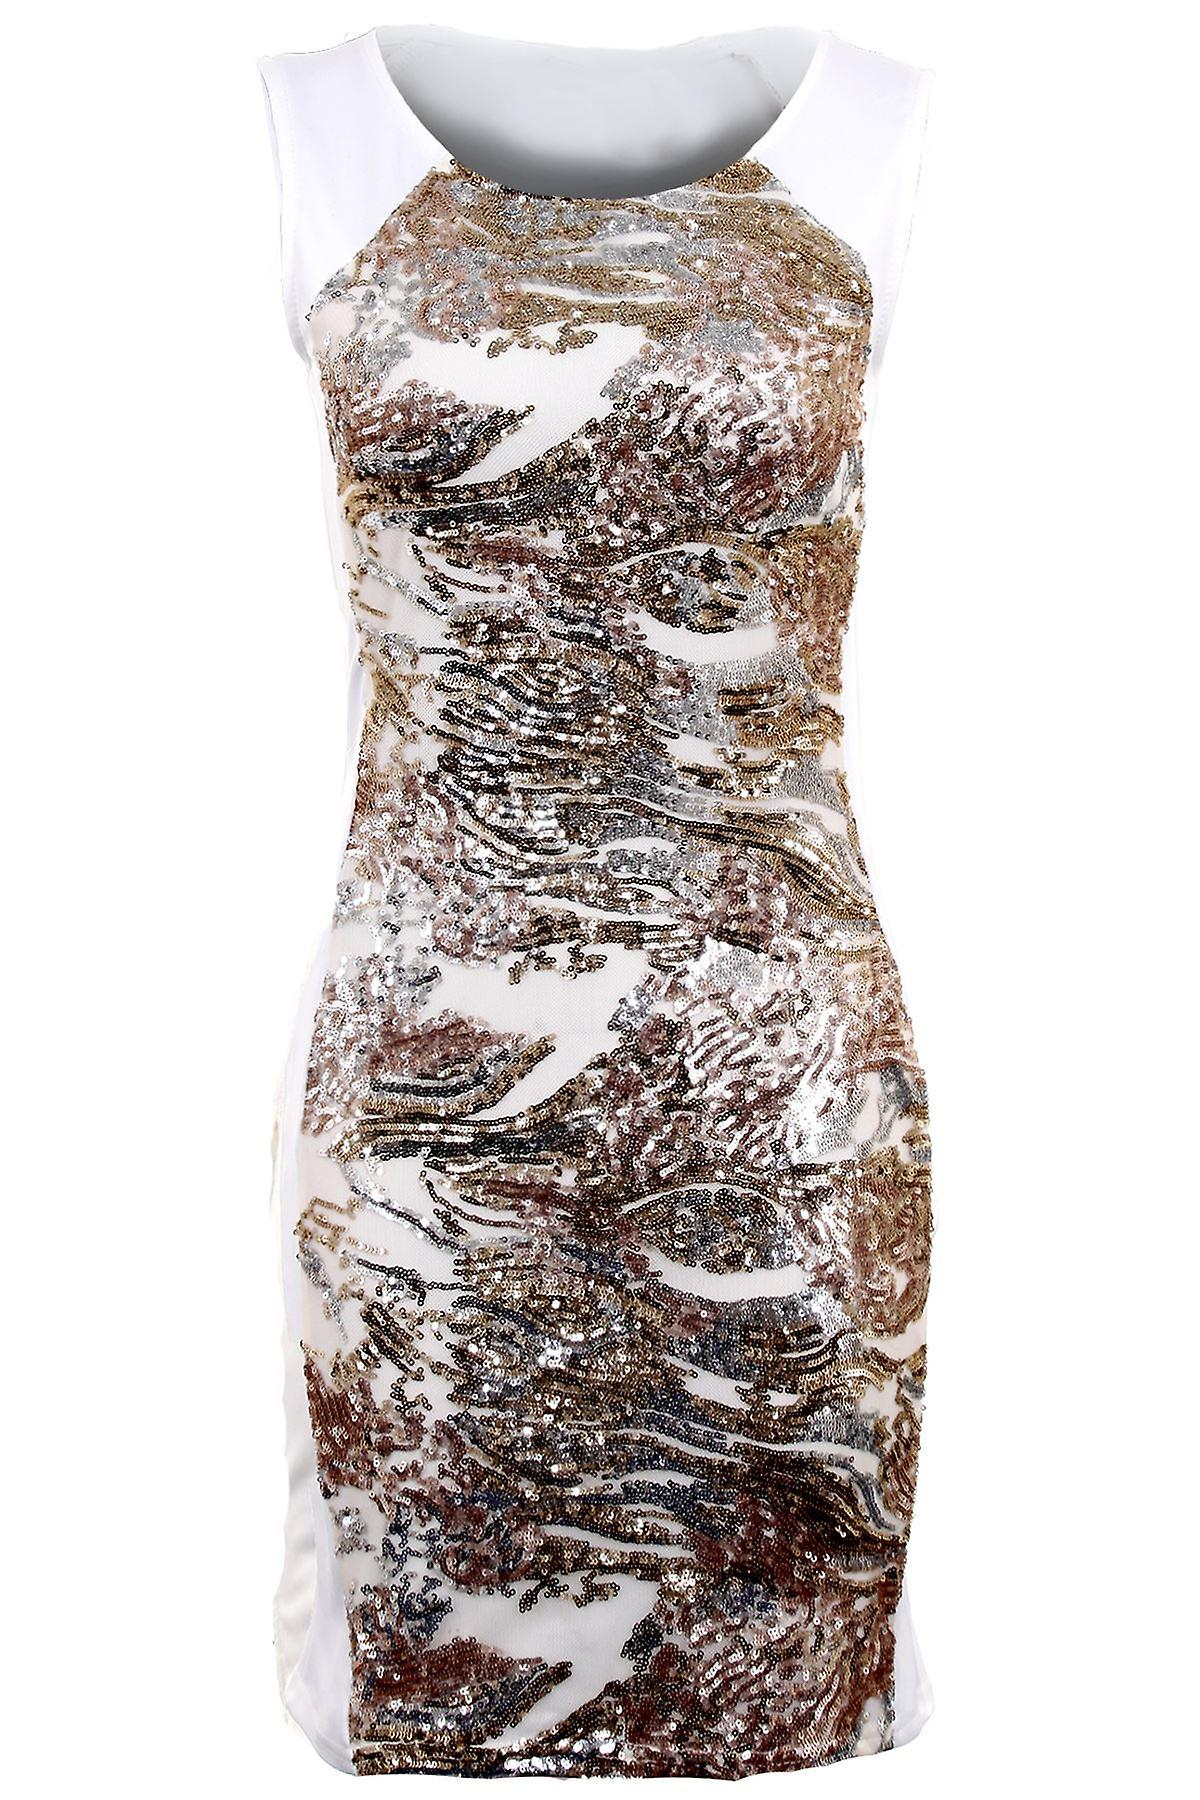 Ladies Silver Black Gold Front Back Sequin Women's Bodycon Sexy Party Dress